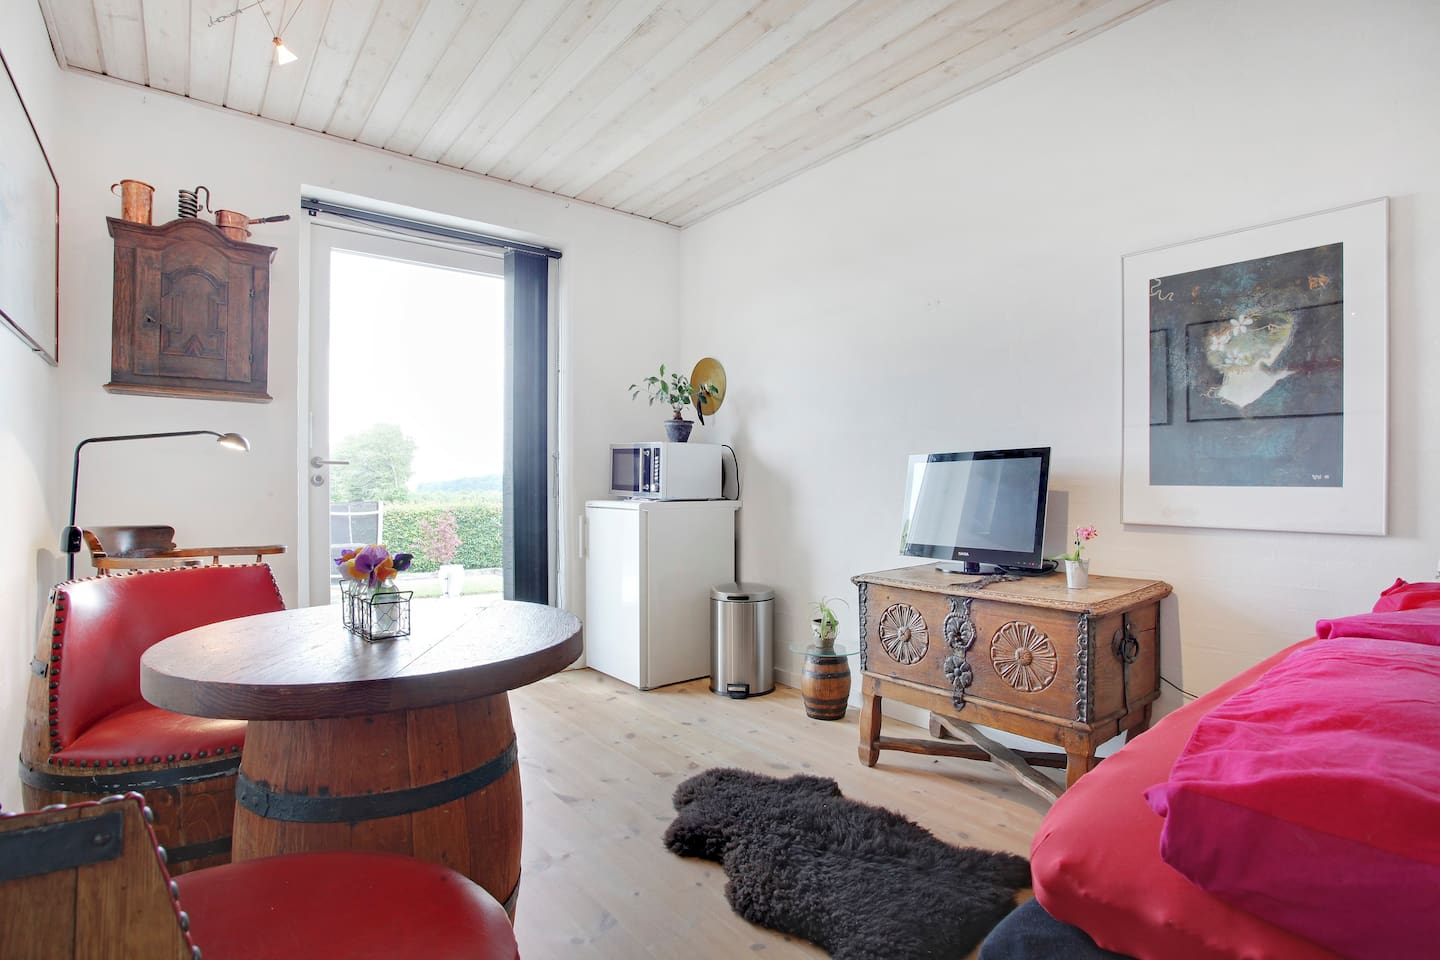 Top 20 bed and breakfasts horsens: inns and b&bs   airbnb horsens